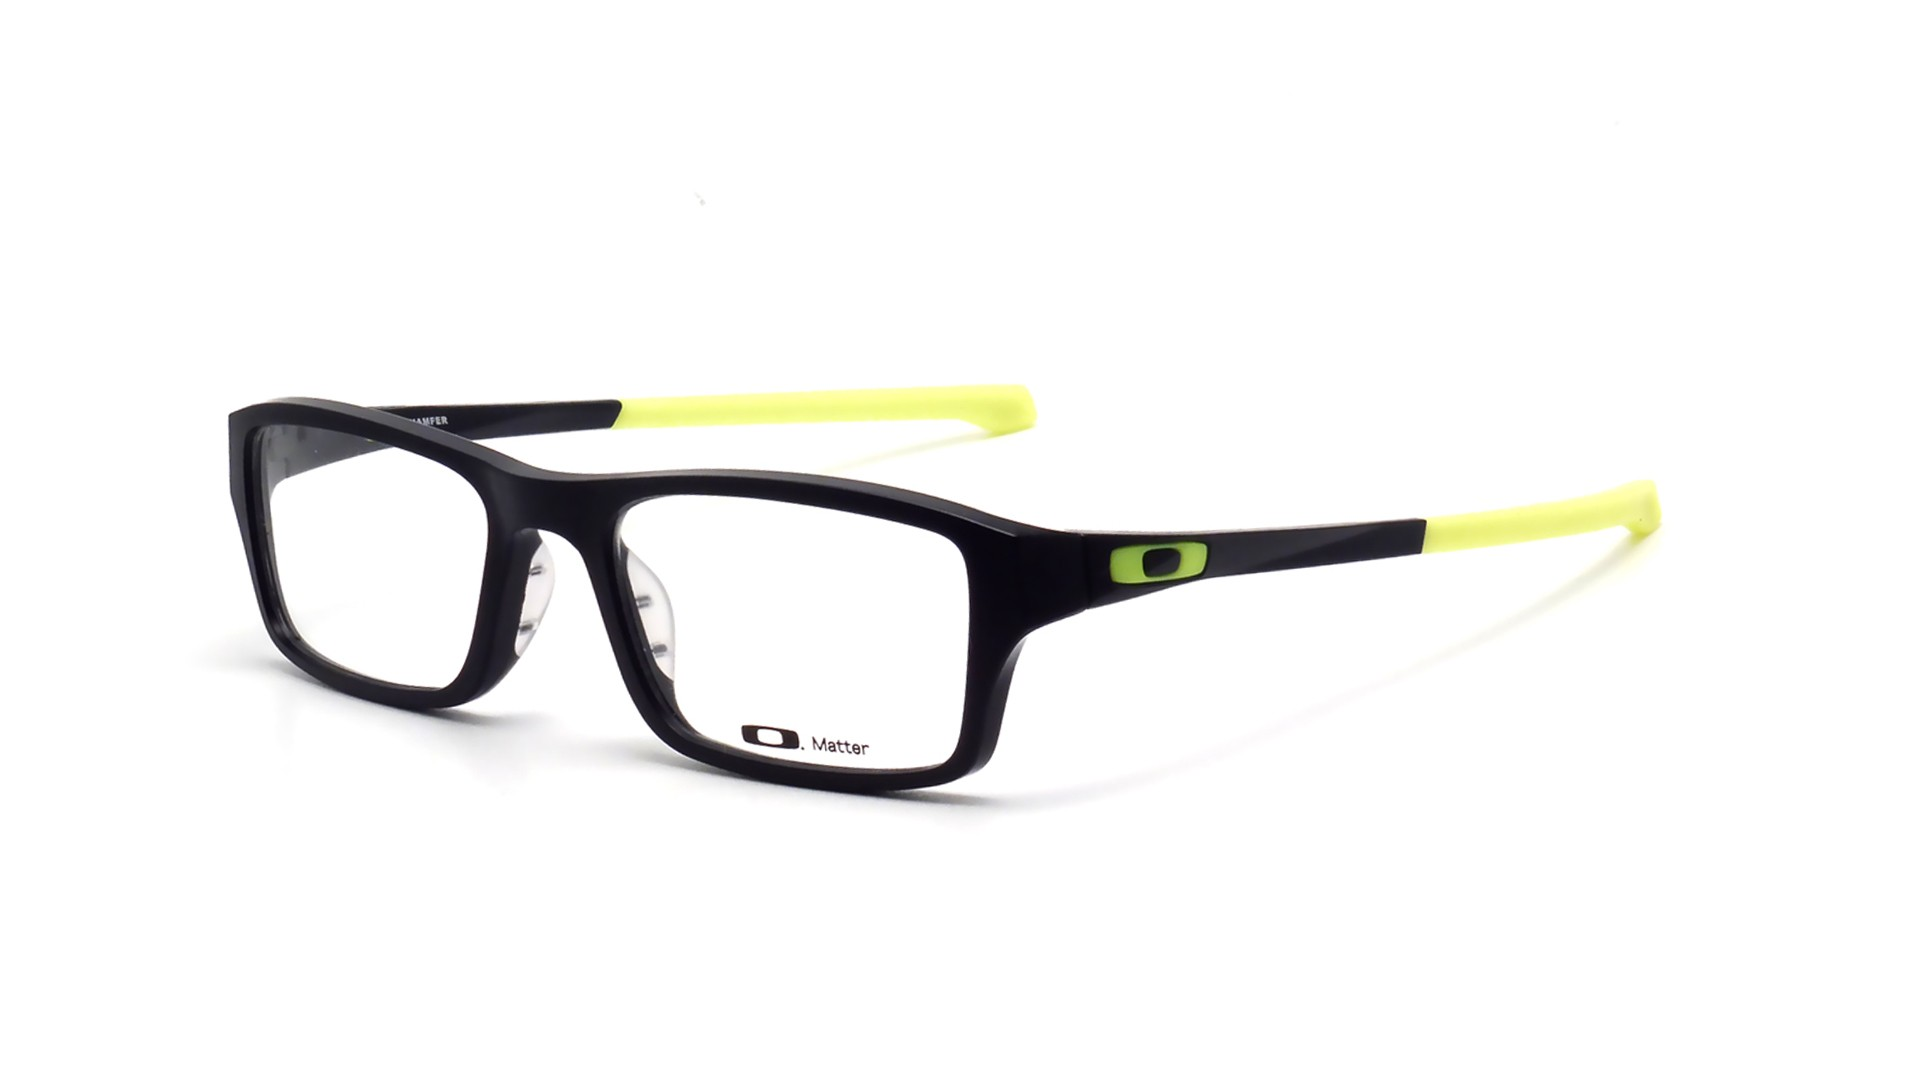 oakley discount glasses